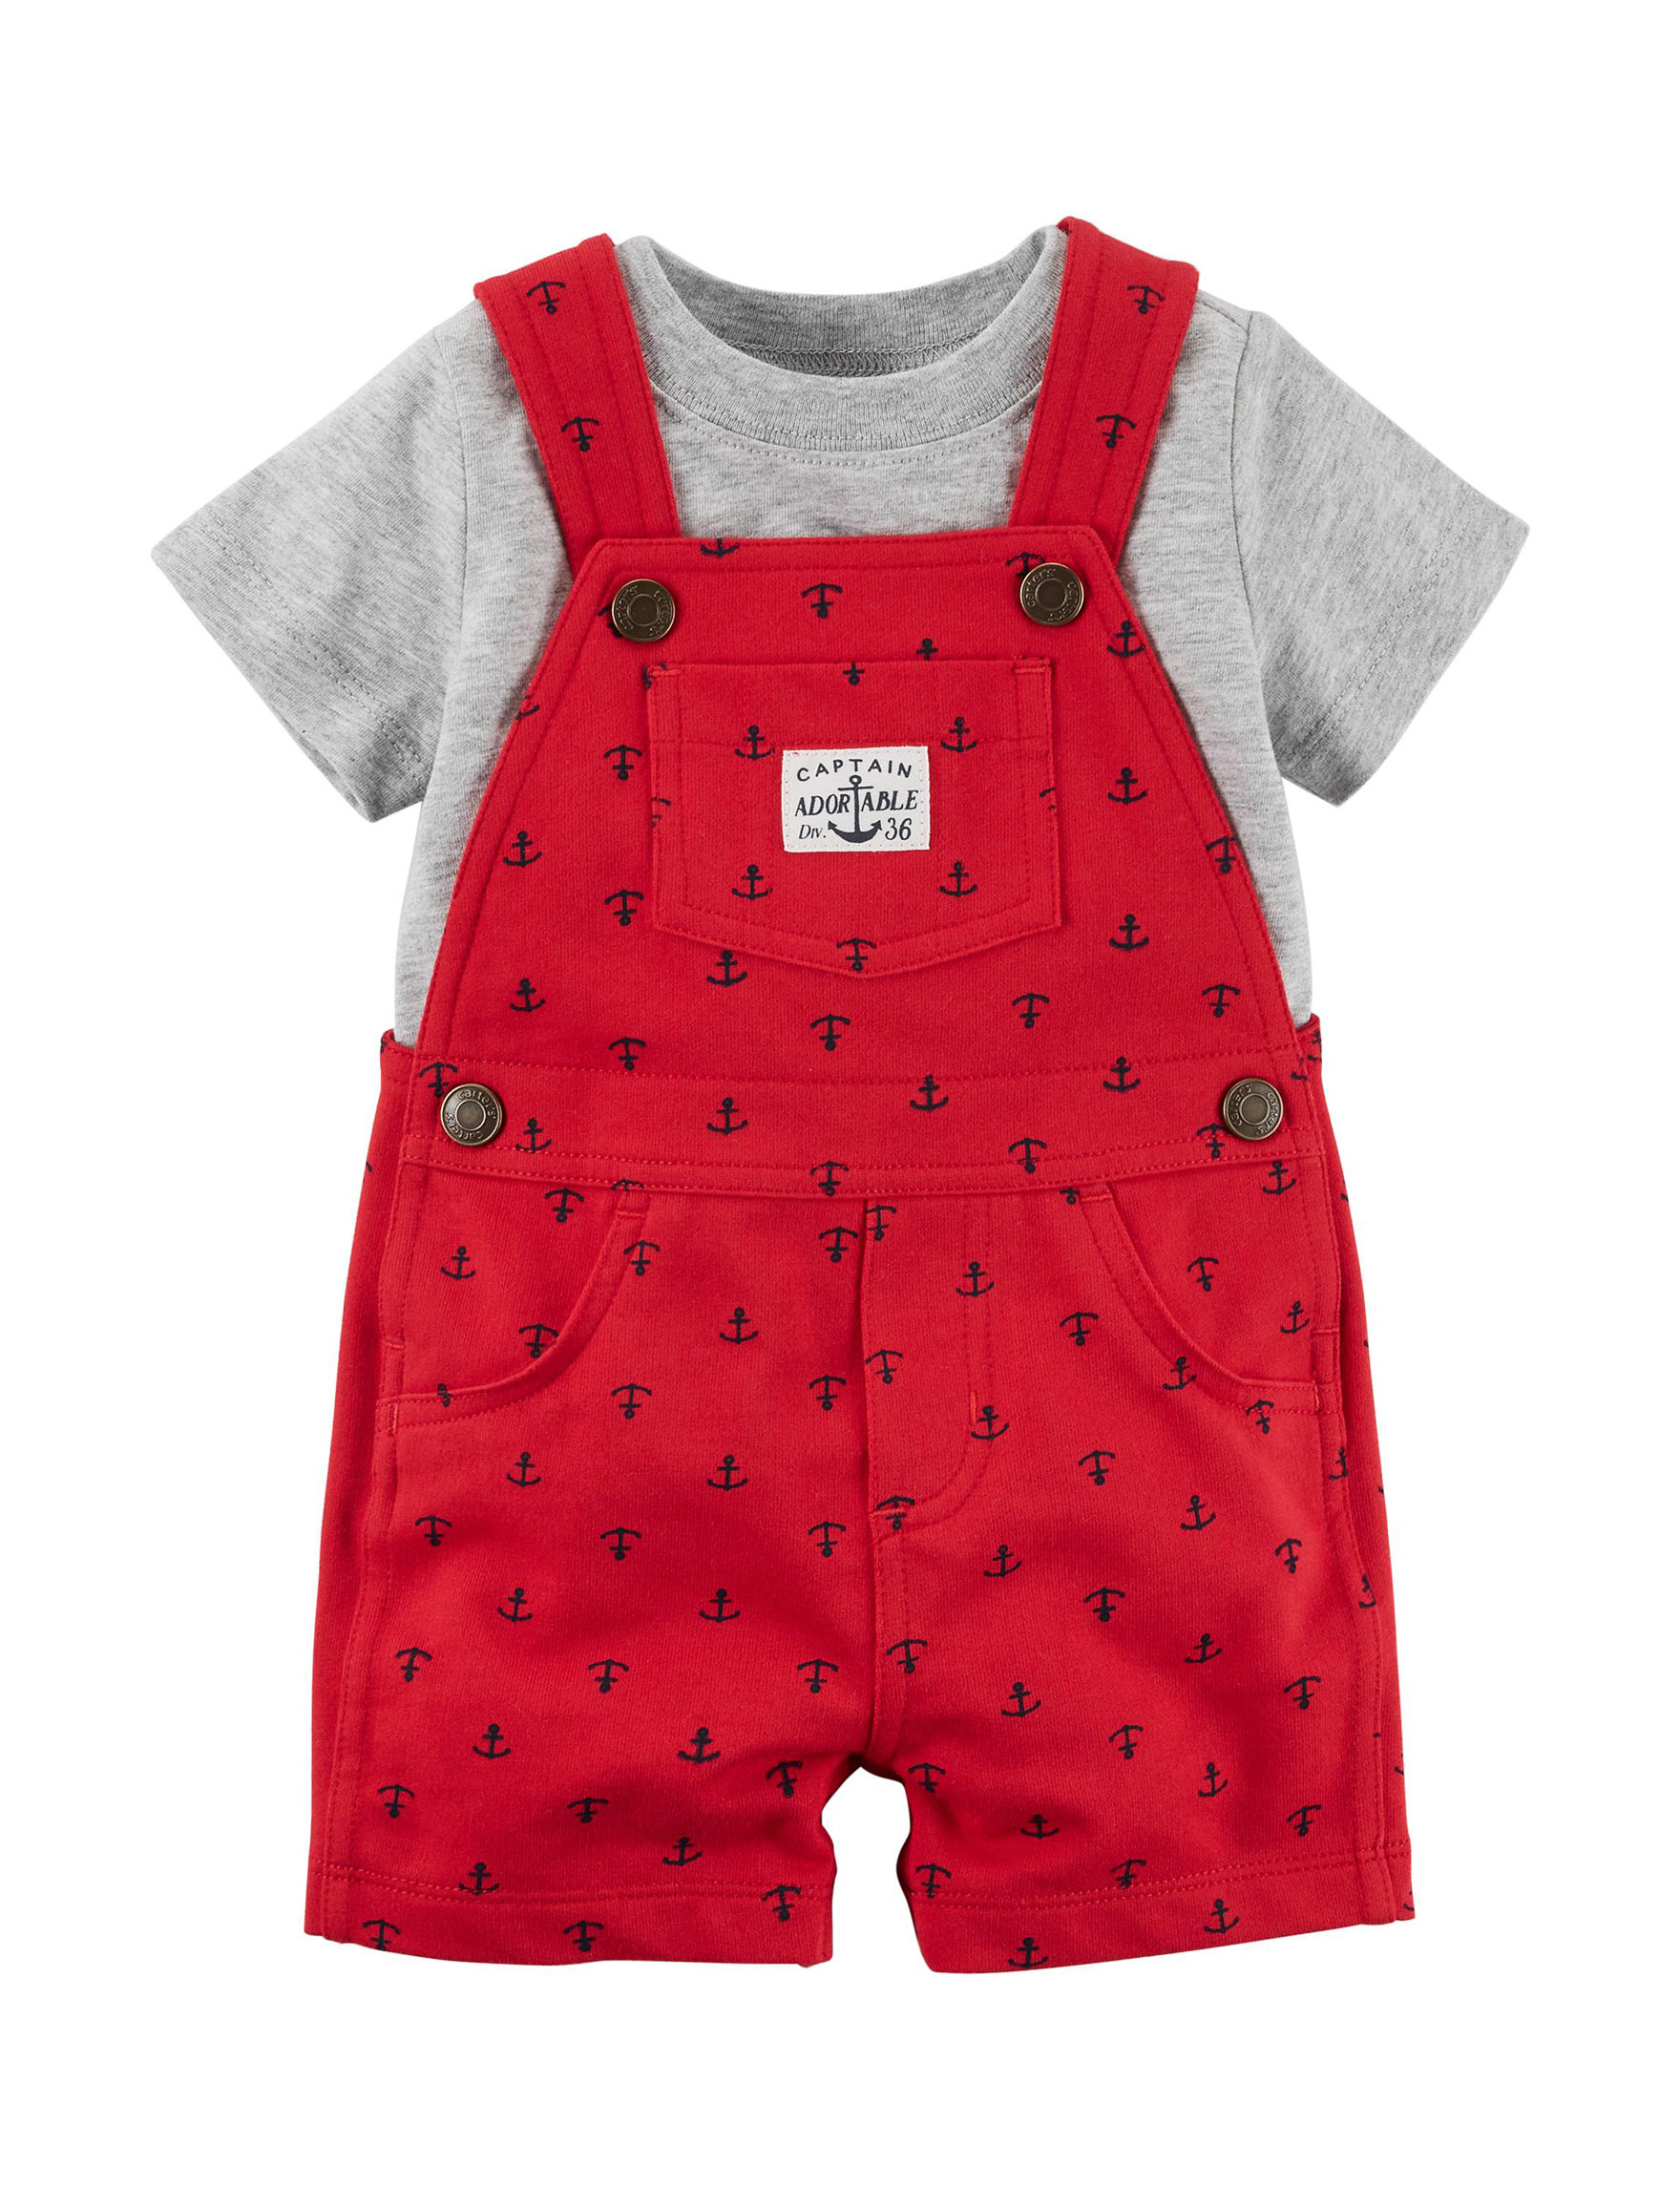 Carter's Grey / Red